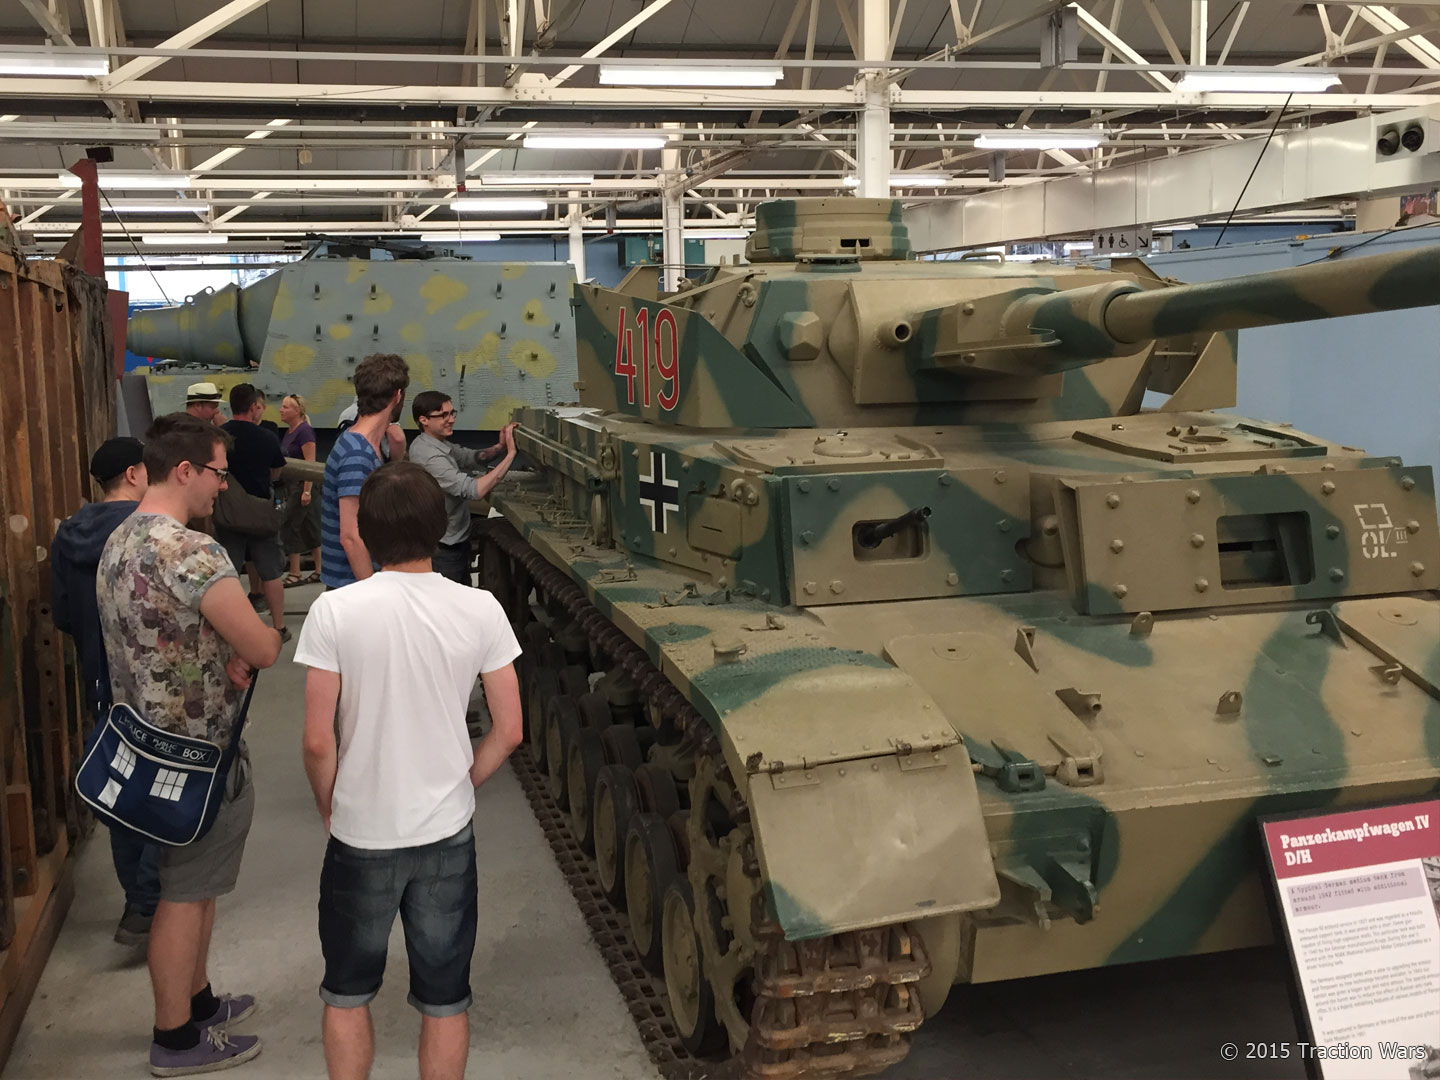 Taking a closer inspection of the Panzer IV.